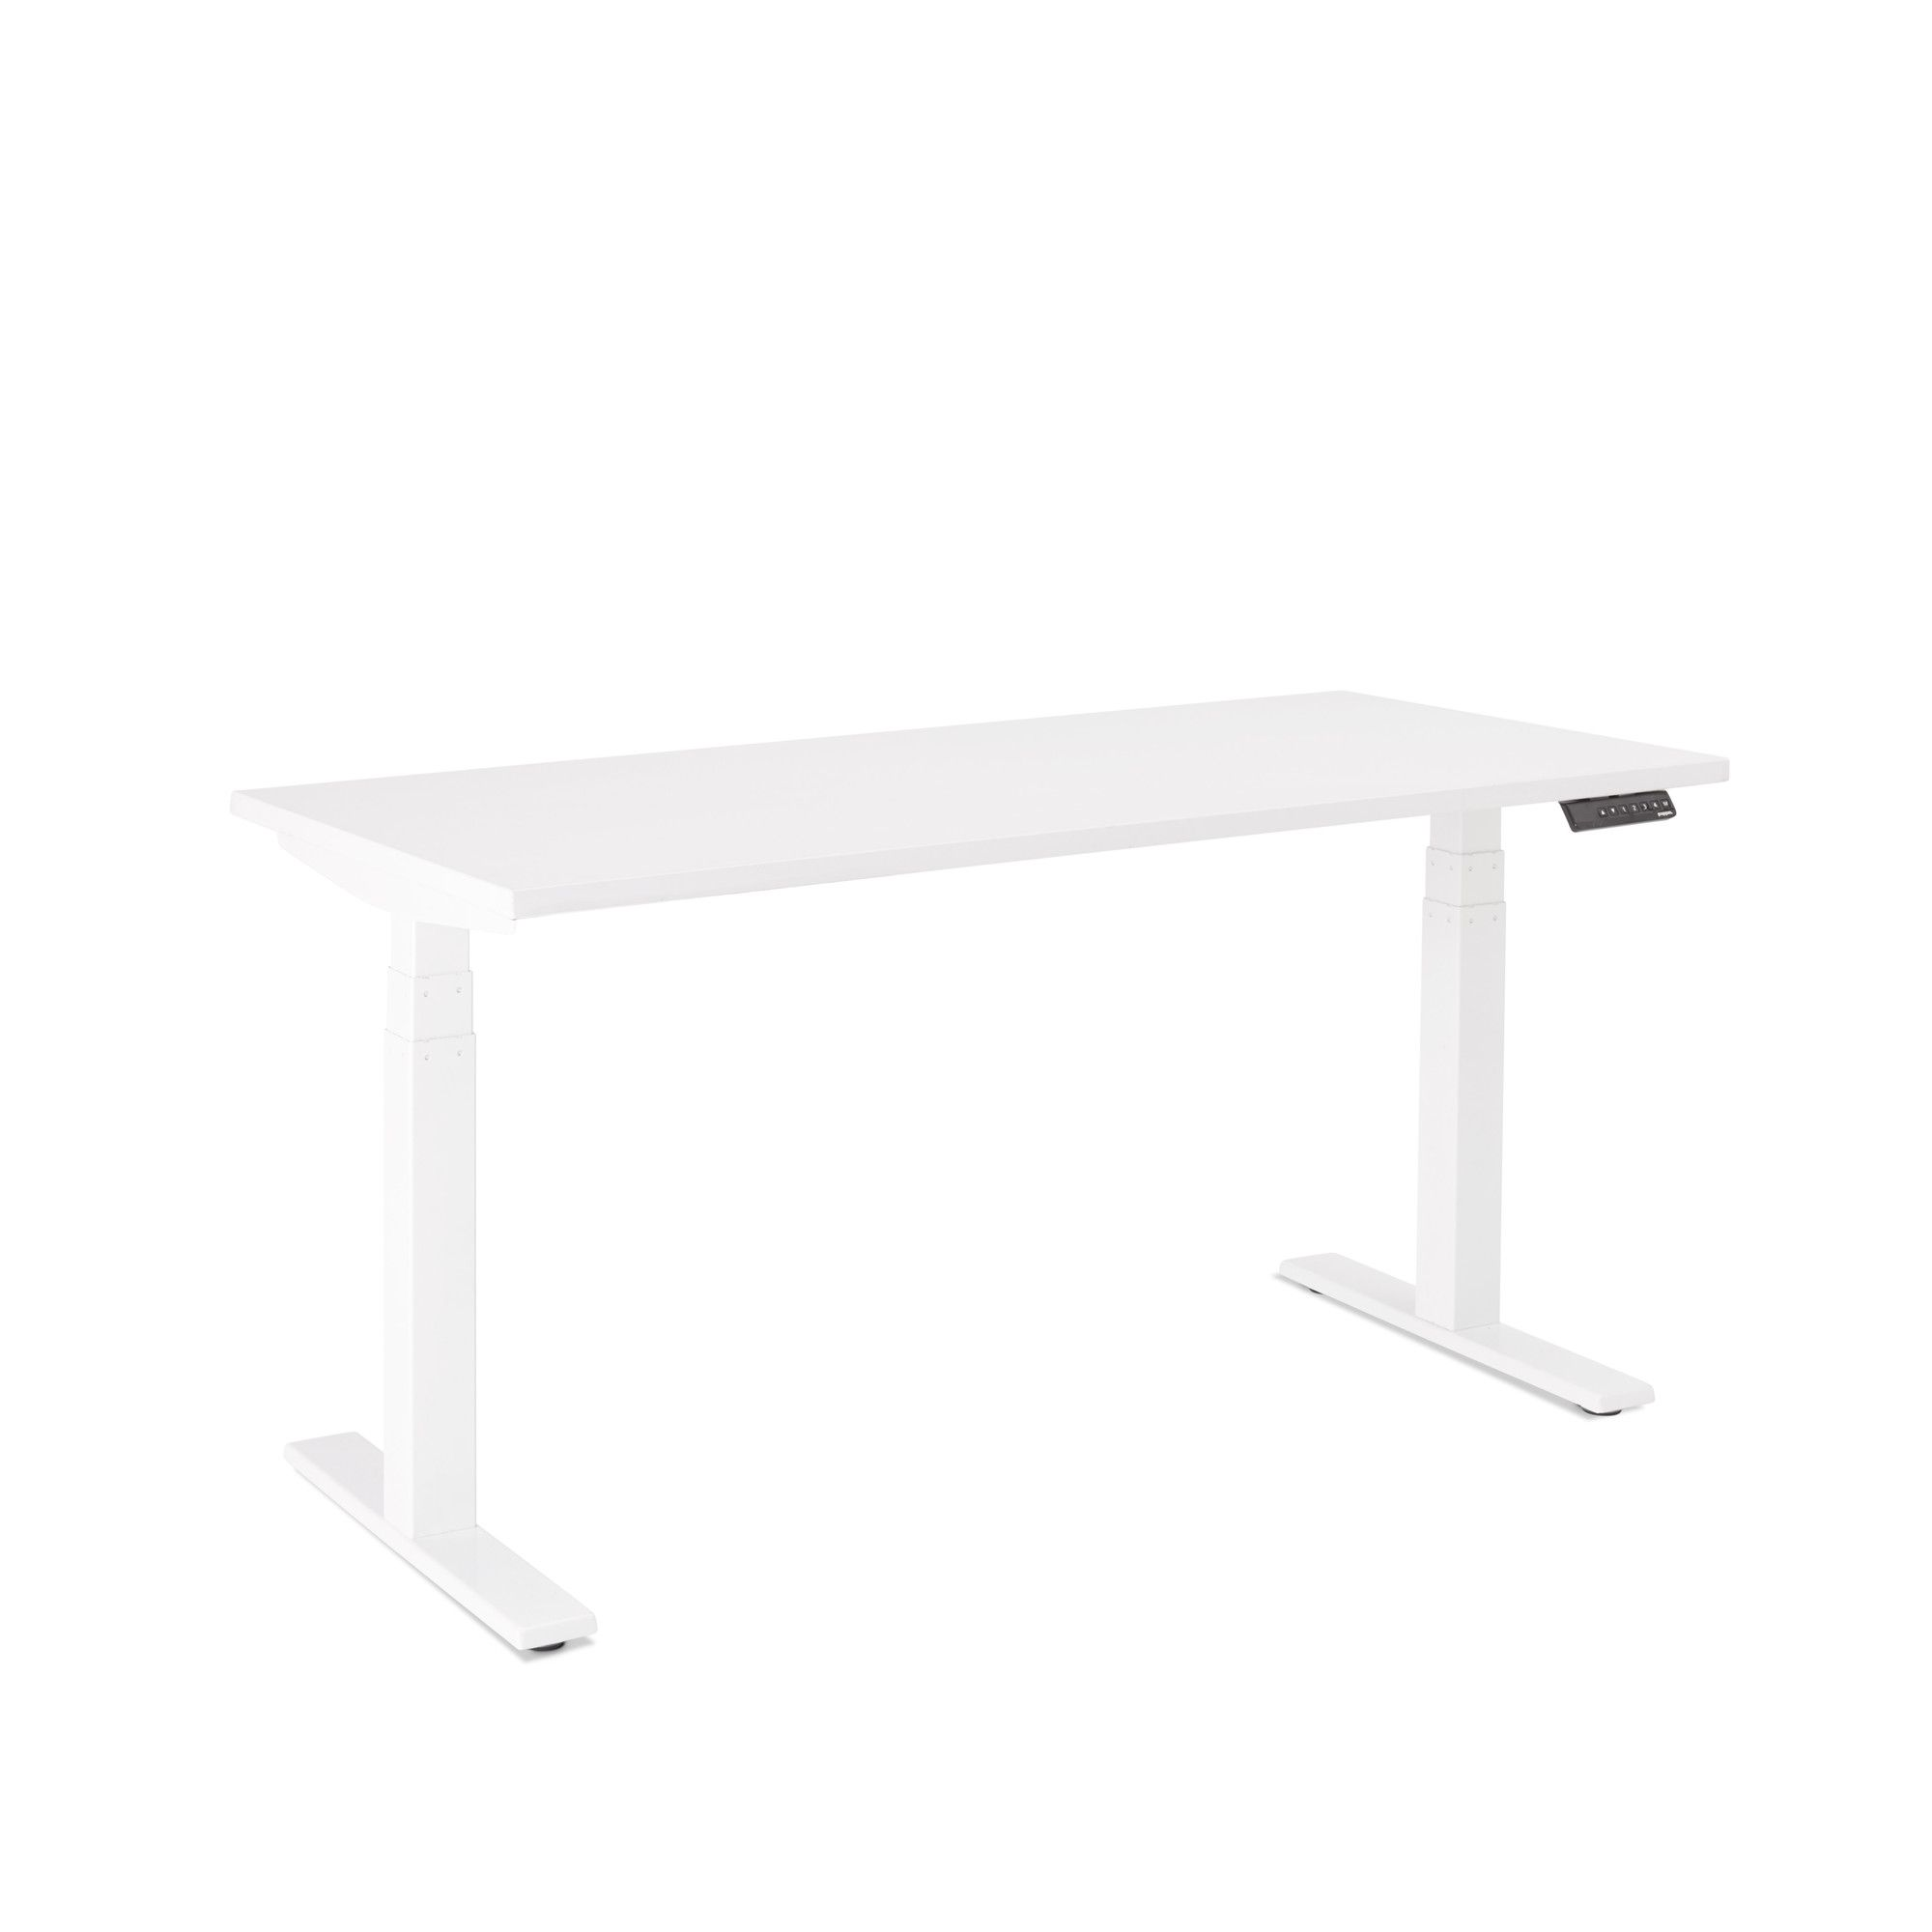 Series L Adjustable Height Single Desk, White Legs | Adjustable Height Desks | Poppin